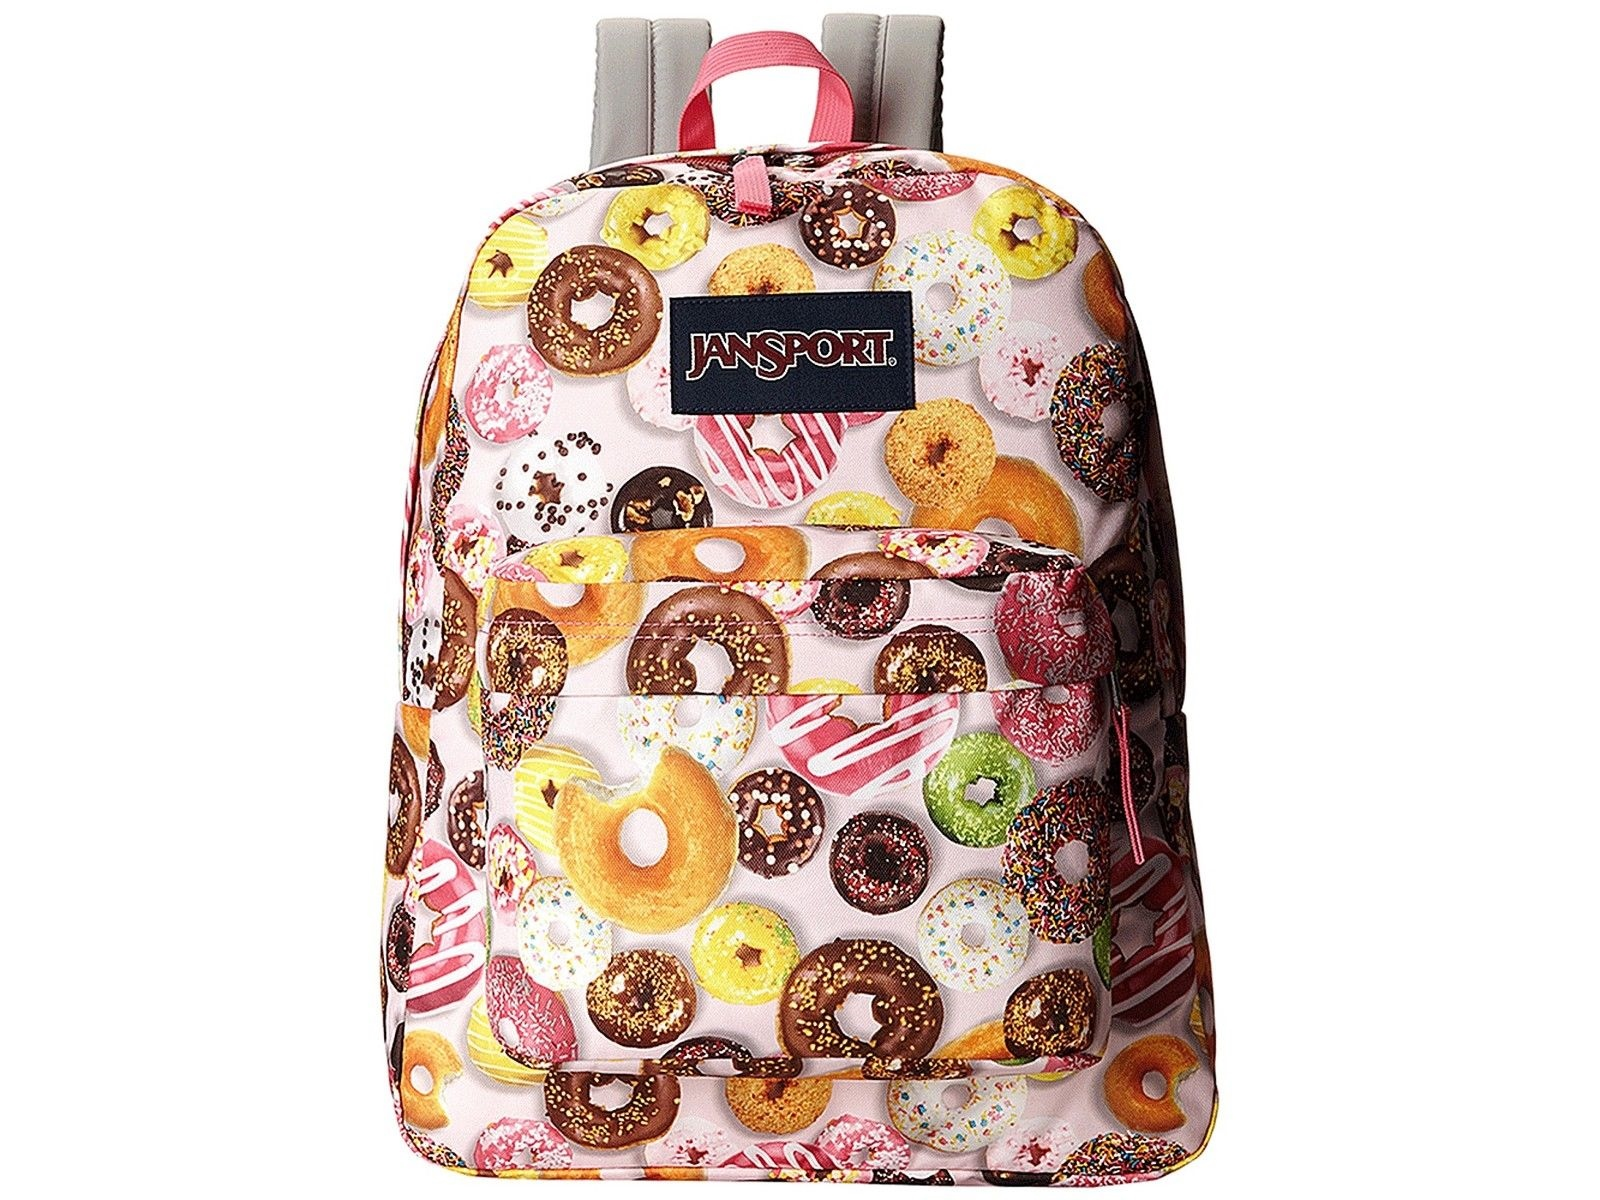 Jansport Backpack Superbreak Donuts Skate School Travel Bag FREE POST